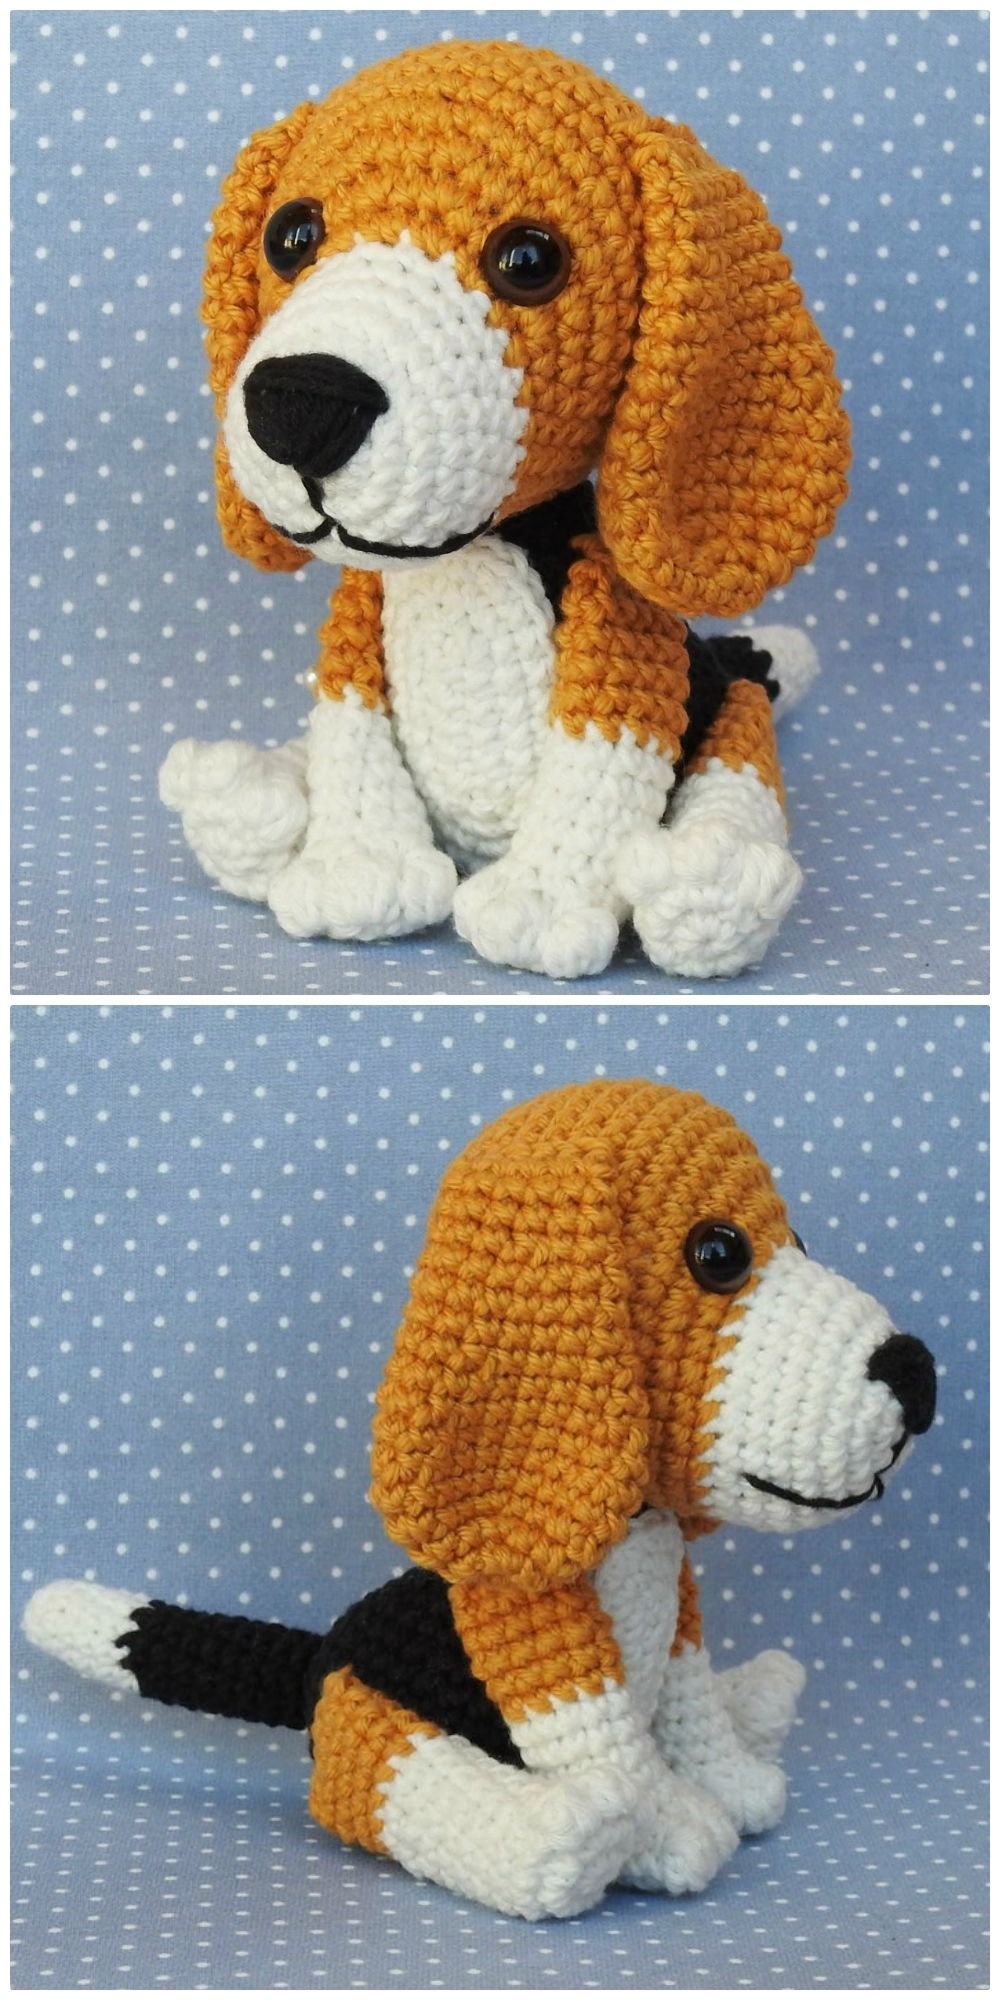 Dog Crochet Pattern Pinterest Top Pins - The WHOot